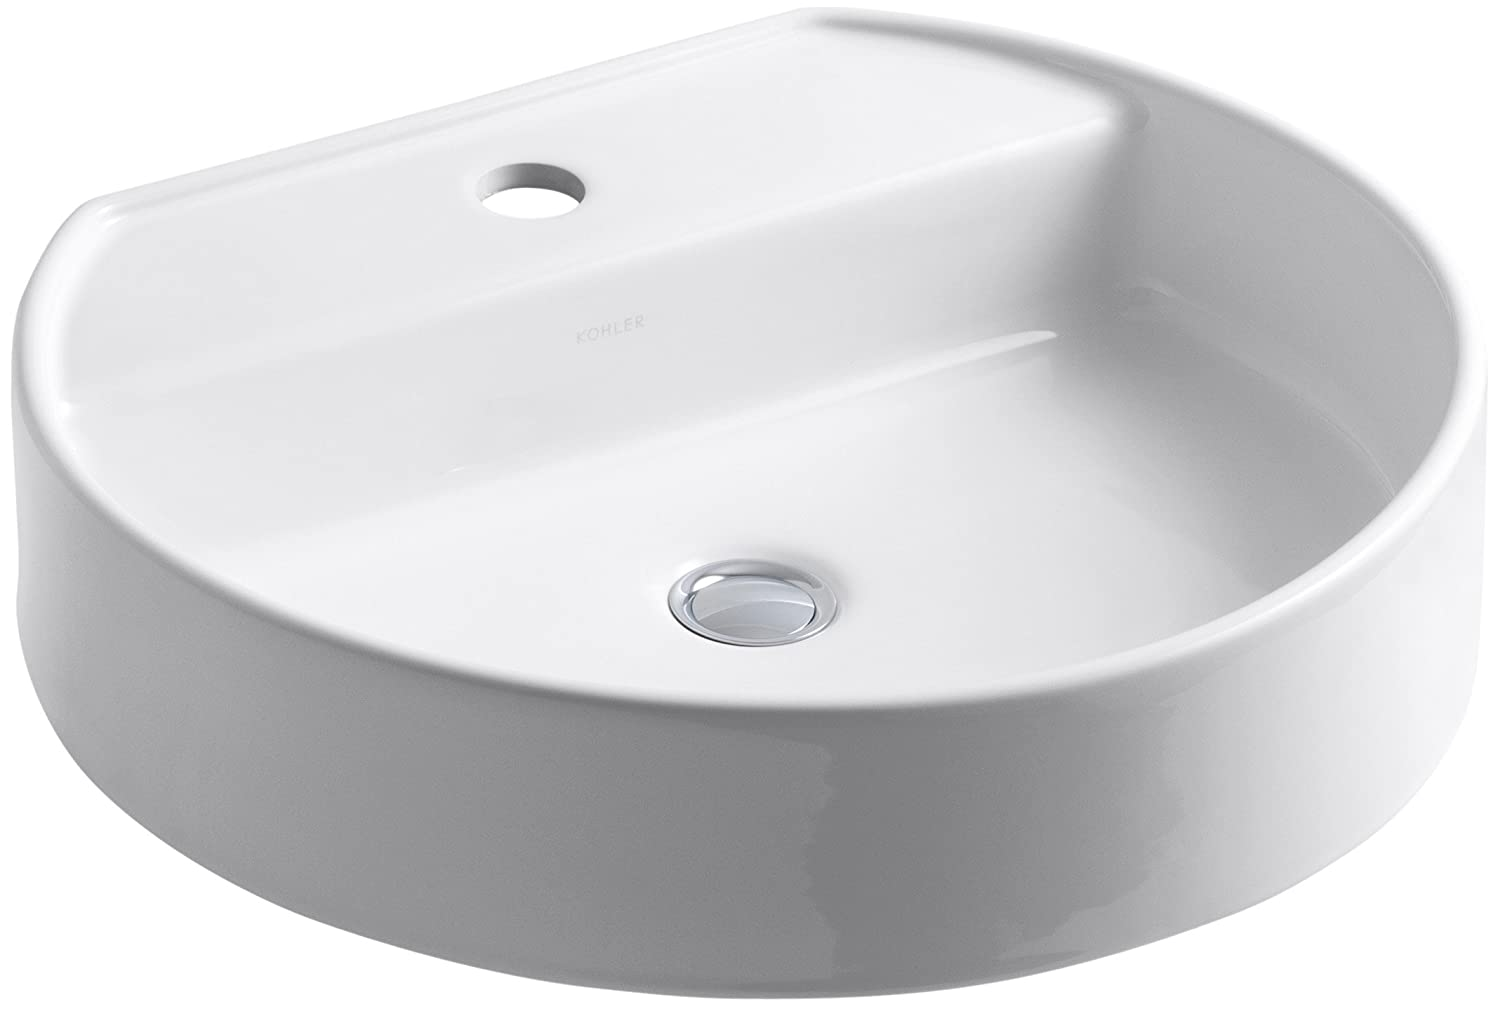 Kohler K 2331 1 0 Chord Wading Pool Bathroom Sink White Vessel Sinks Amazon Com